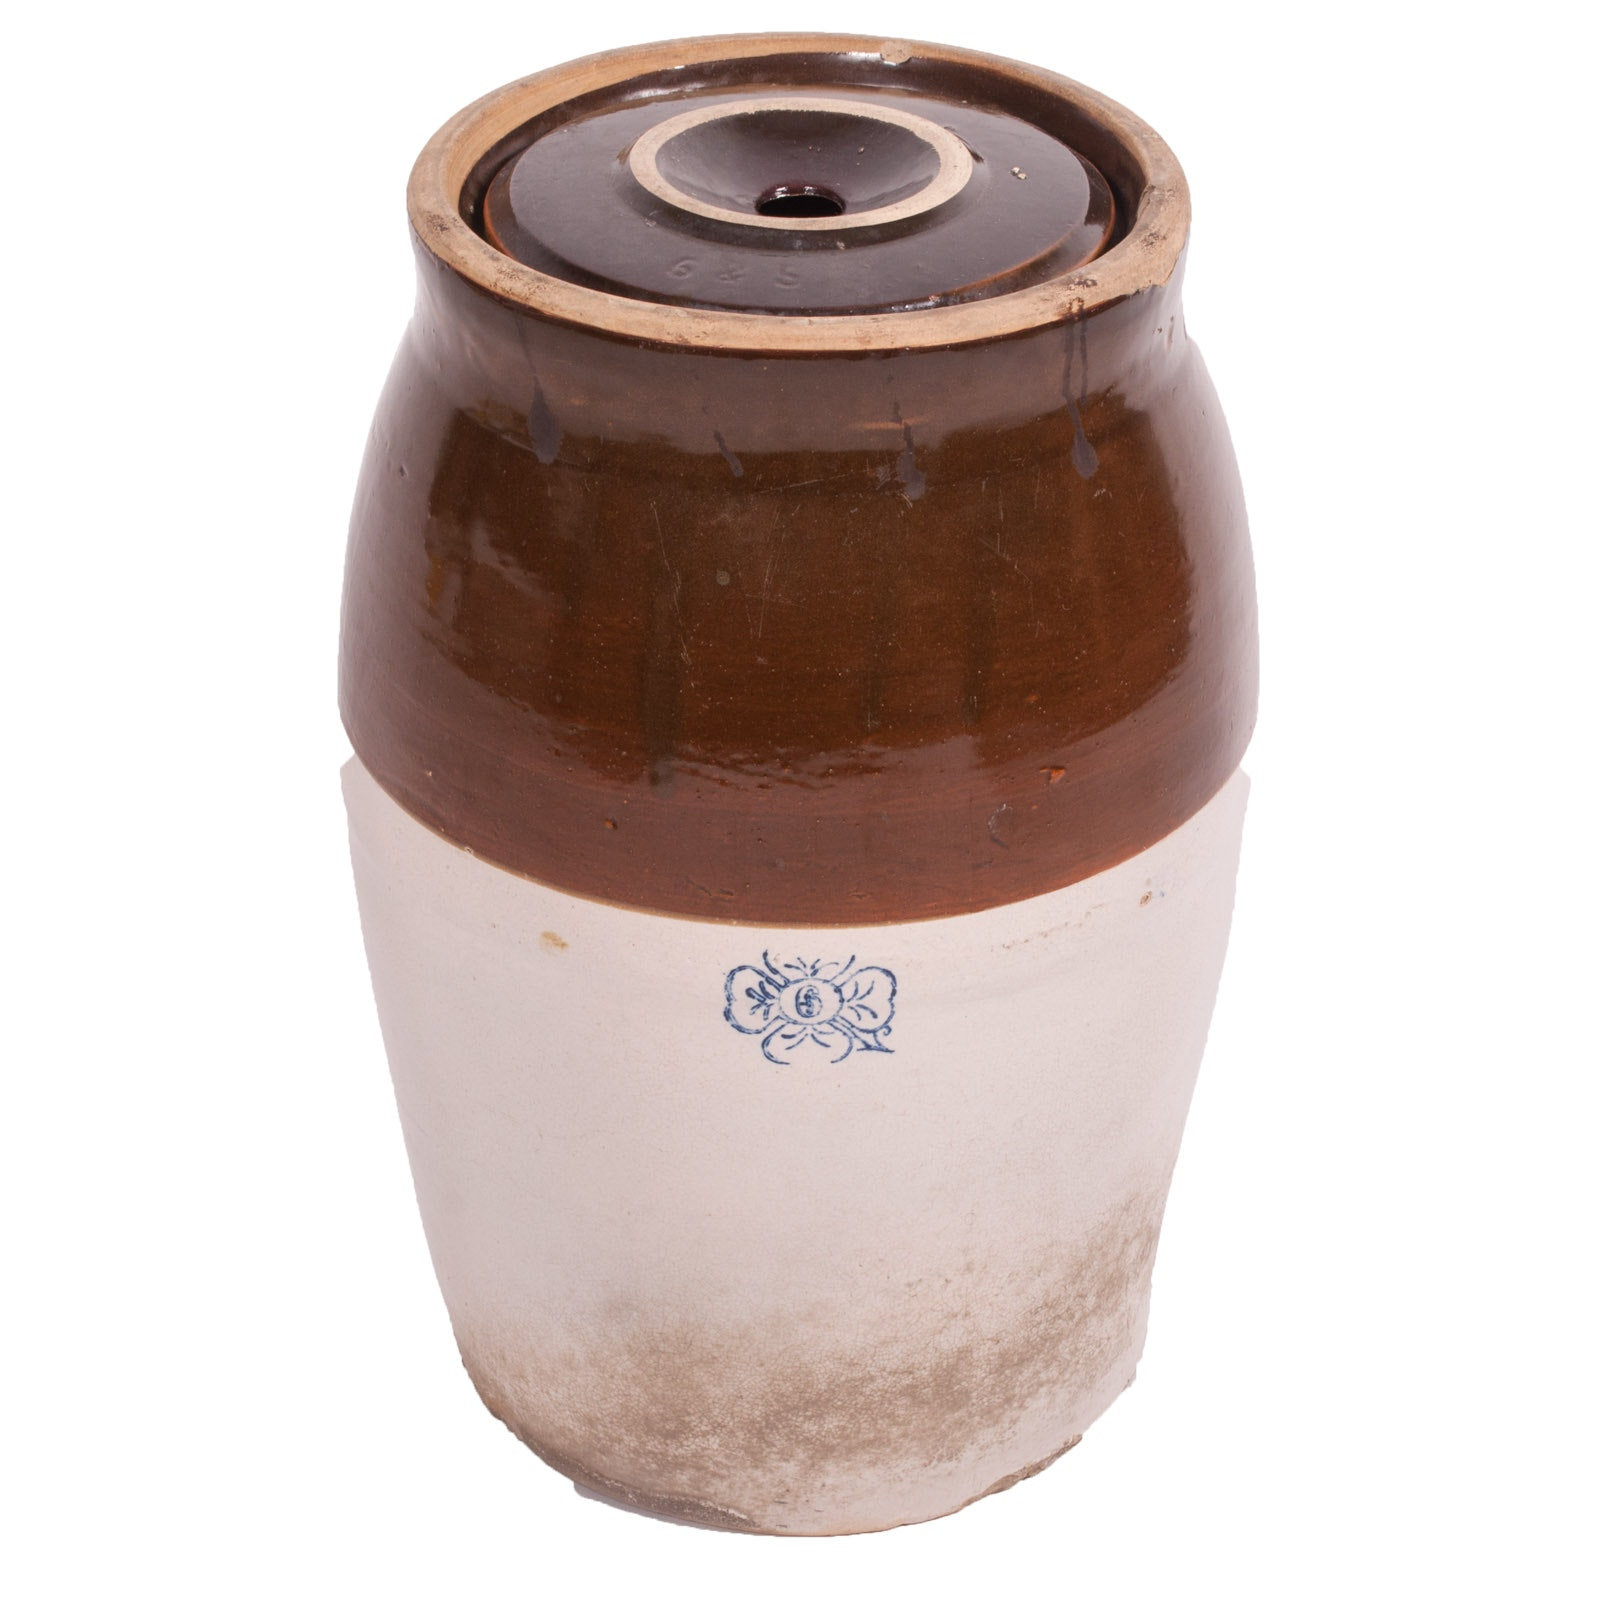 Antique Miller Pottery Stoneware Six-Gallon Butter Churn with Lid